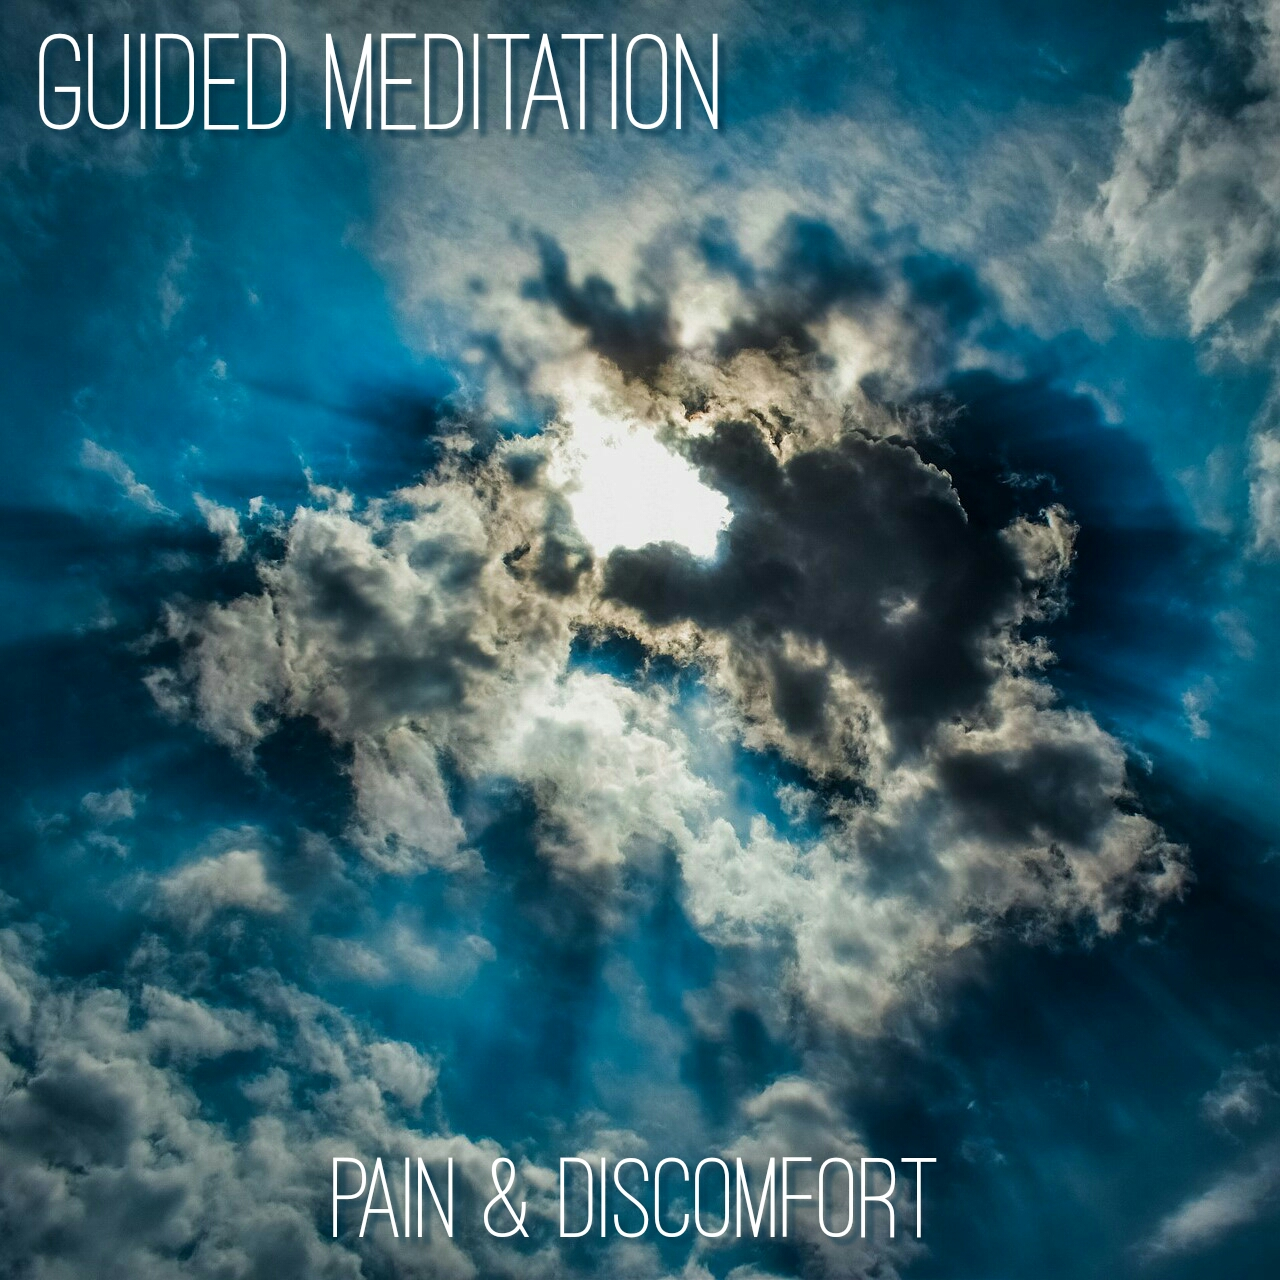 Guided Meditation for Healing Pain & Discomfort Mp3 Download |  Music2relax com